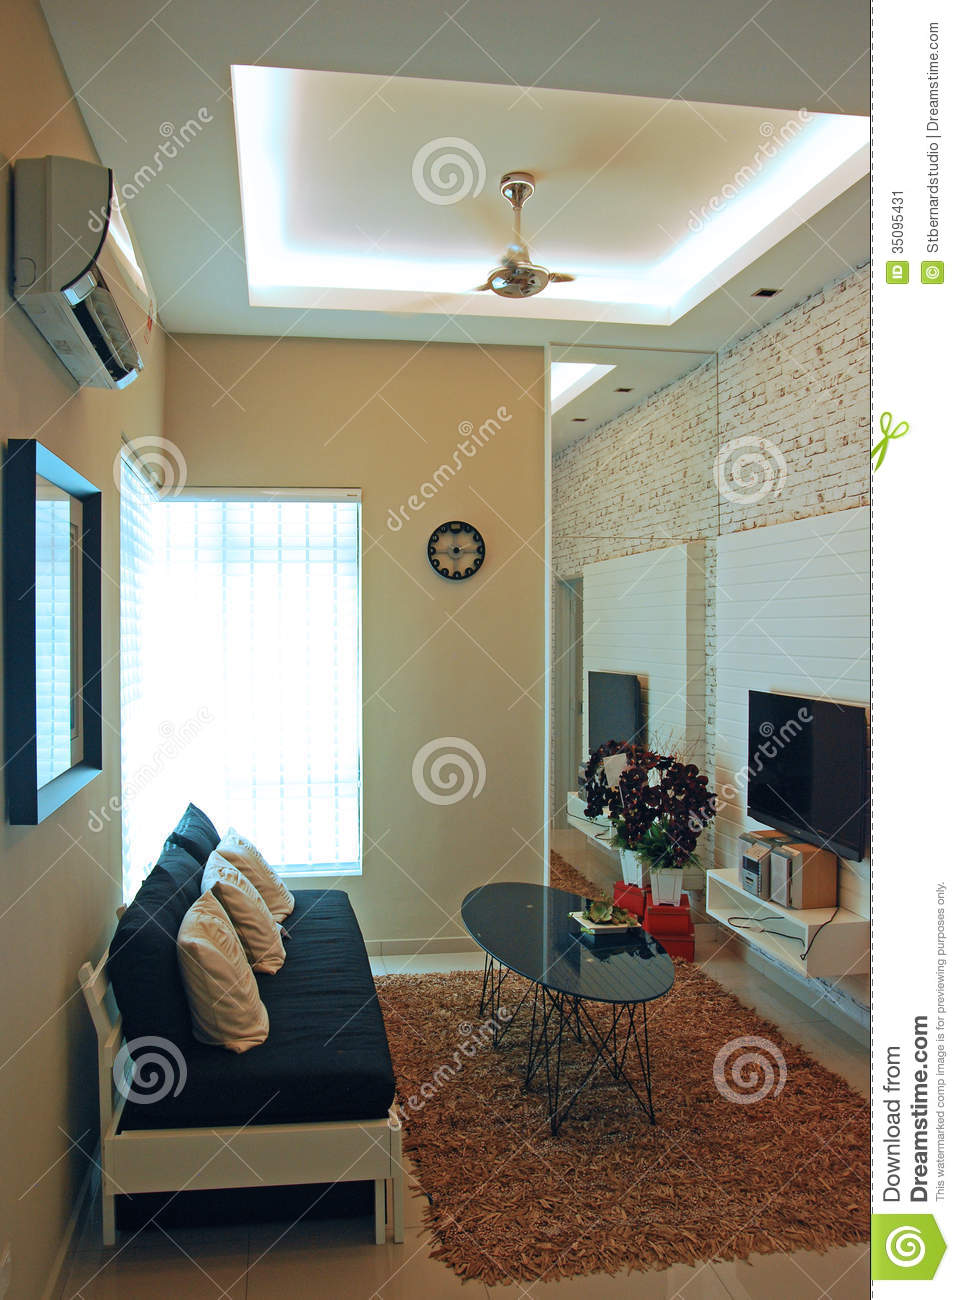 A Compact Living Room Design Stock Image Image 35095431